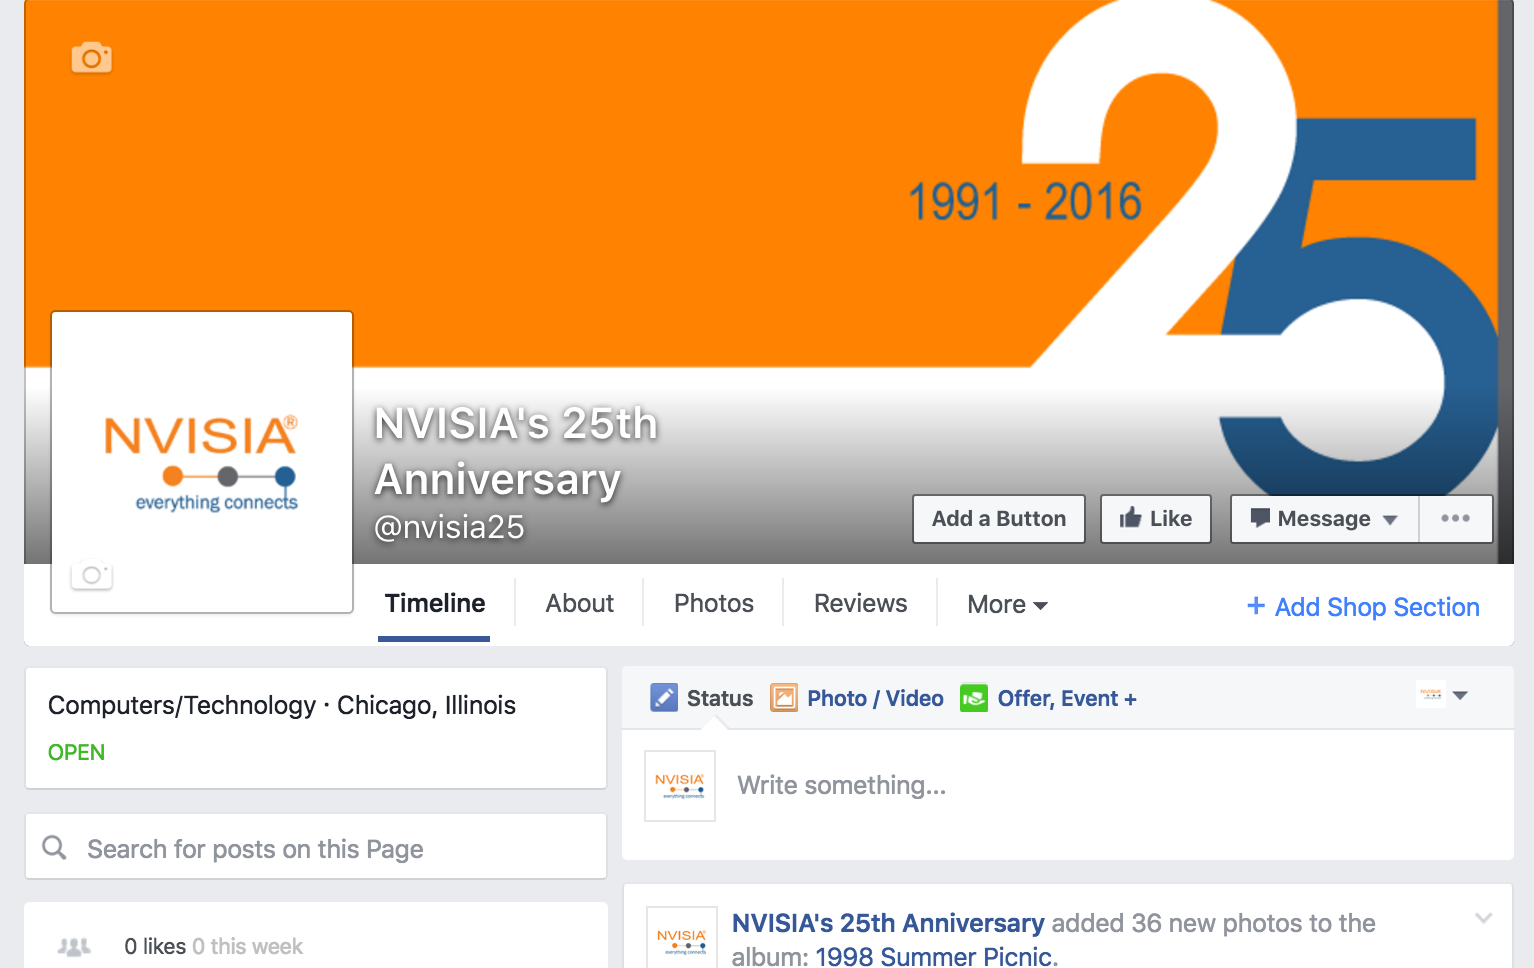 NVISIA_25th_anniversary_Facebook_Page-659224-edited.png